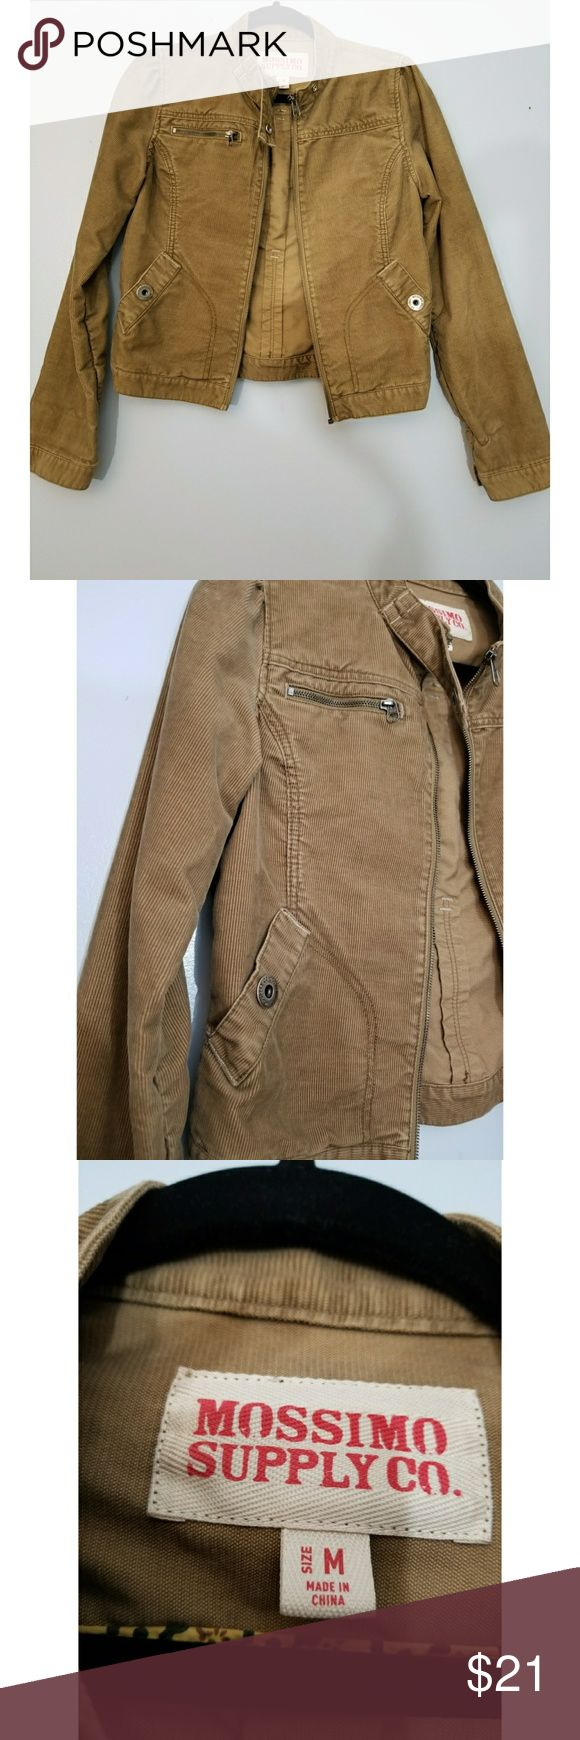 """Mossimo Women's Tan Camel Brown Corduroy Jacket Mossimo Women's Tan/Camel Brown Corduroy Zip Up Med Jacket  Can be very casual or it can make your outfit more dressed up. Has front pockets. Great material and very comfortable.  Measurements:(Approximate. Taken Flat) Chest (armpit to armpit): 20"""" Length from shoulder: 19"""" Sleeve Length from shoulder seam: 25"""" EUC-No damage, tears, holes, or stains  Smoke/Pet Free Home   WJAC006 Mossimo Supply Co. Jackets & Coats"""